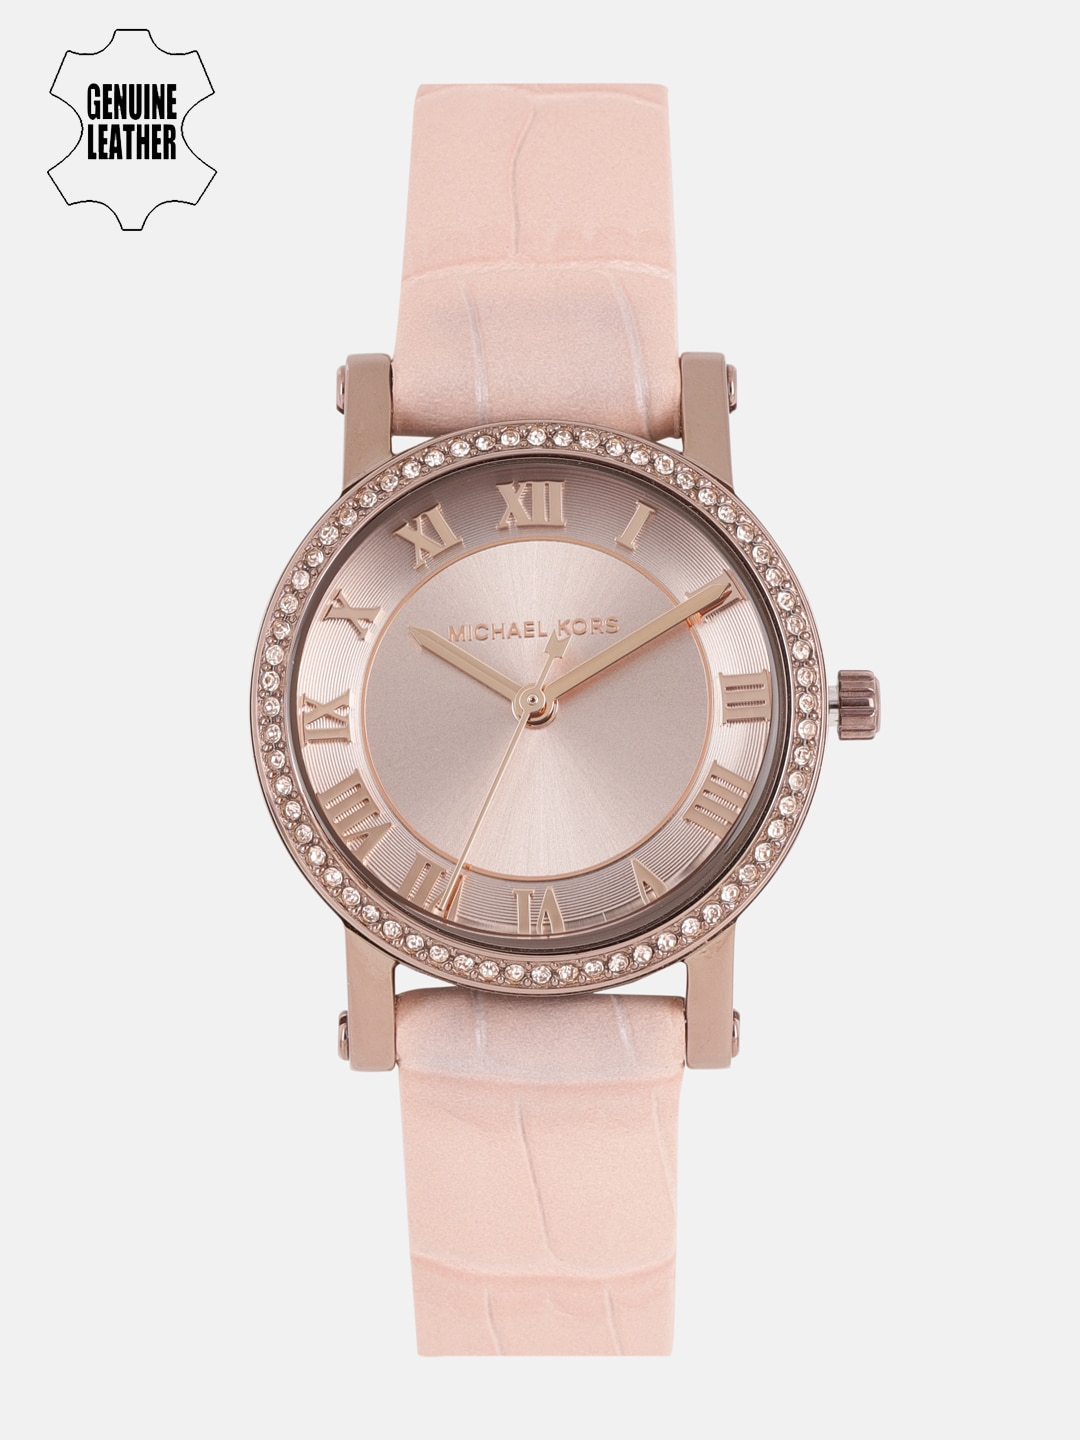 56cbbe957810 Women Michael Kors Watches - Buy Women Michael Kors Watches online in India